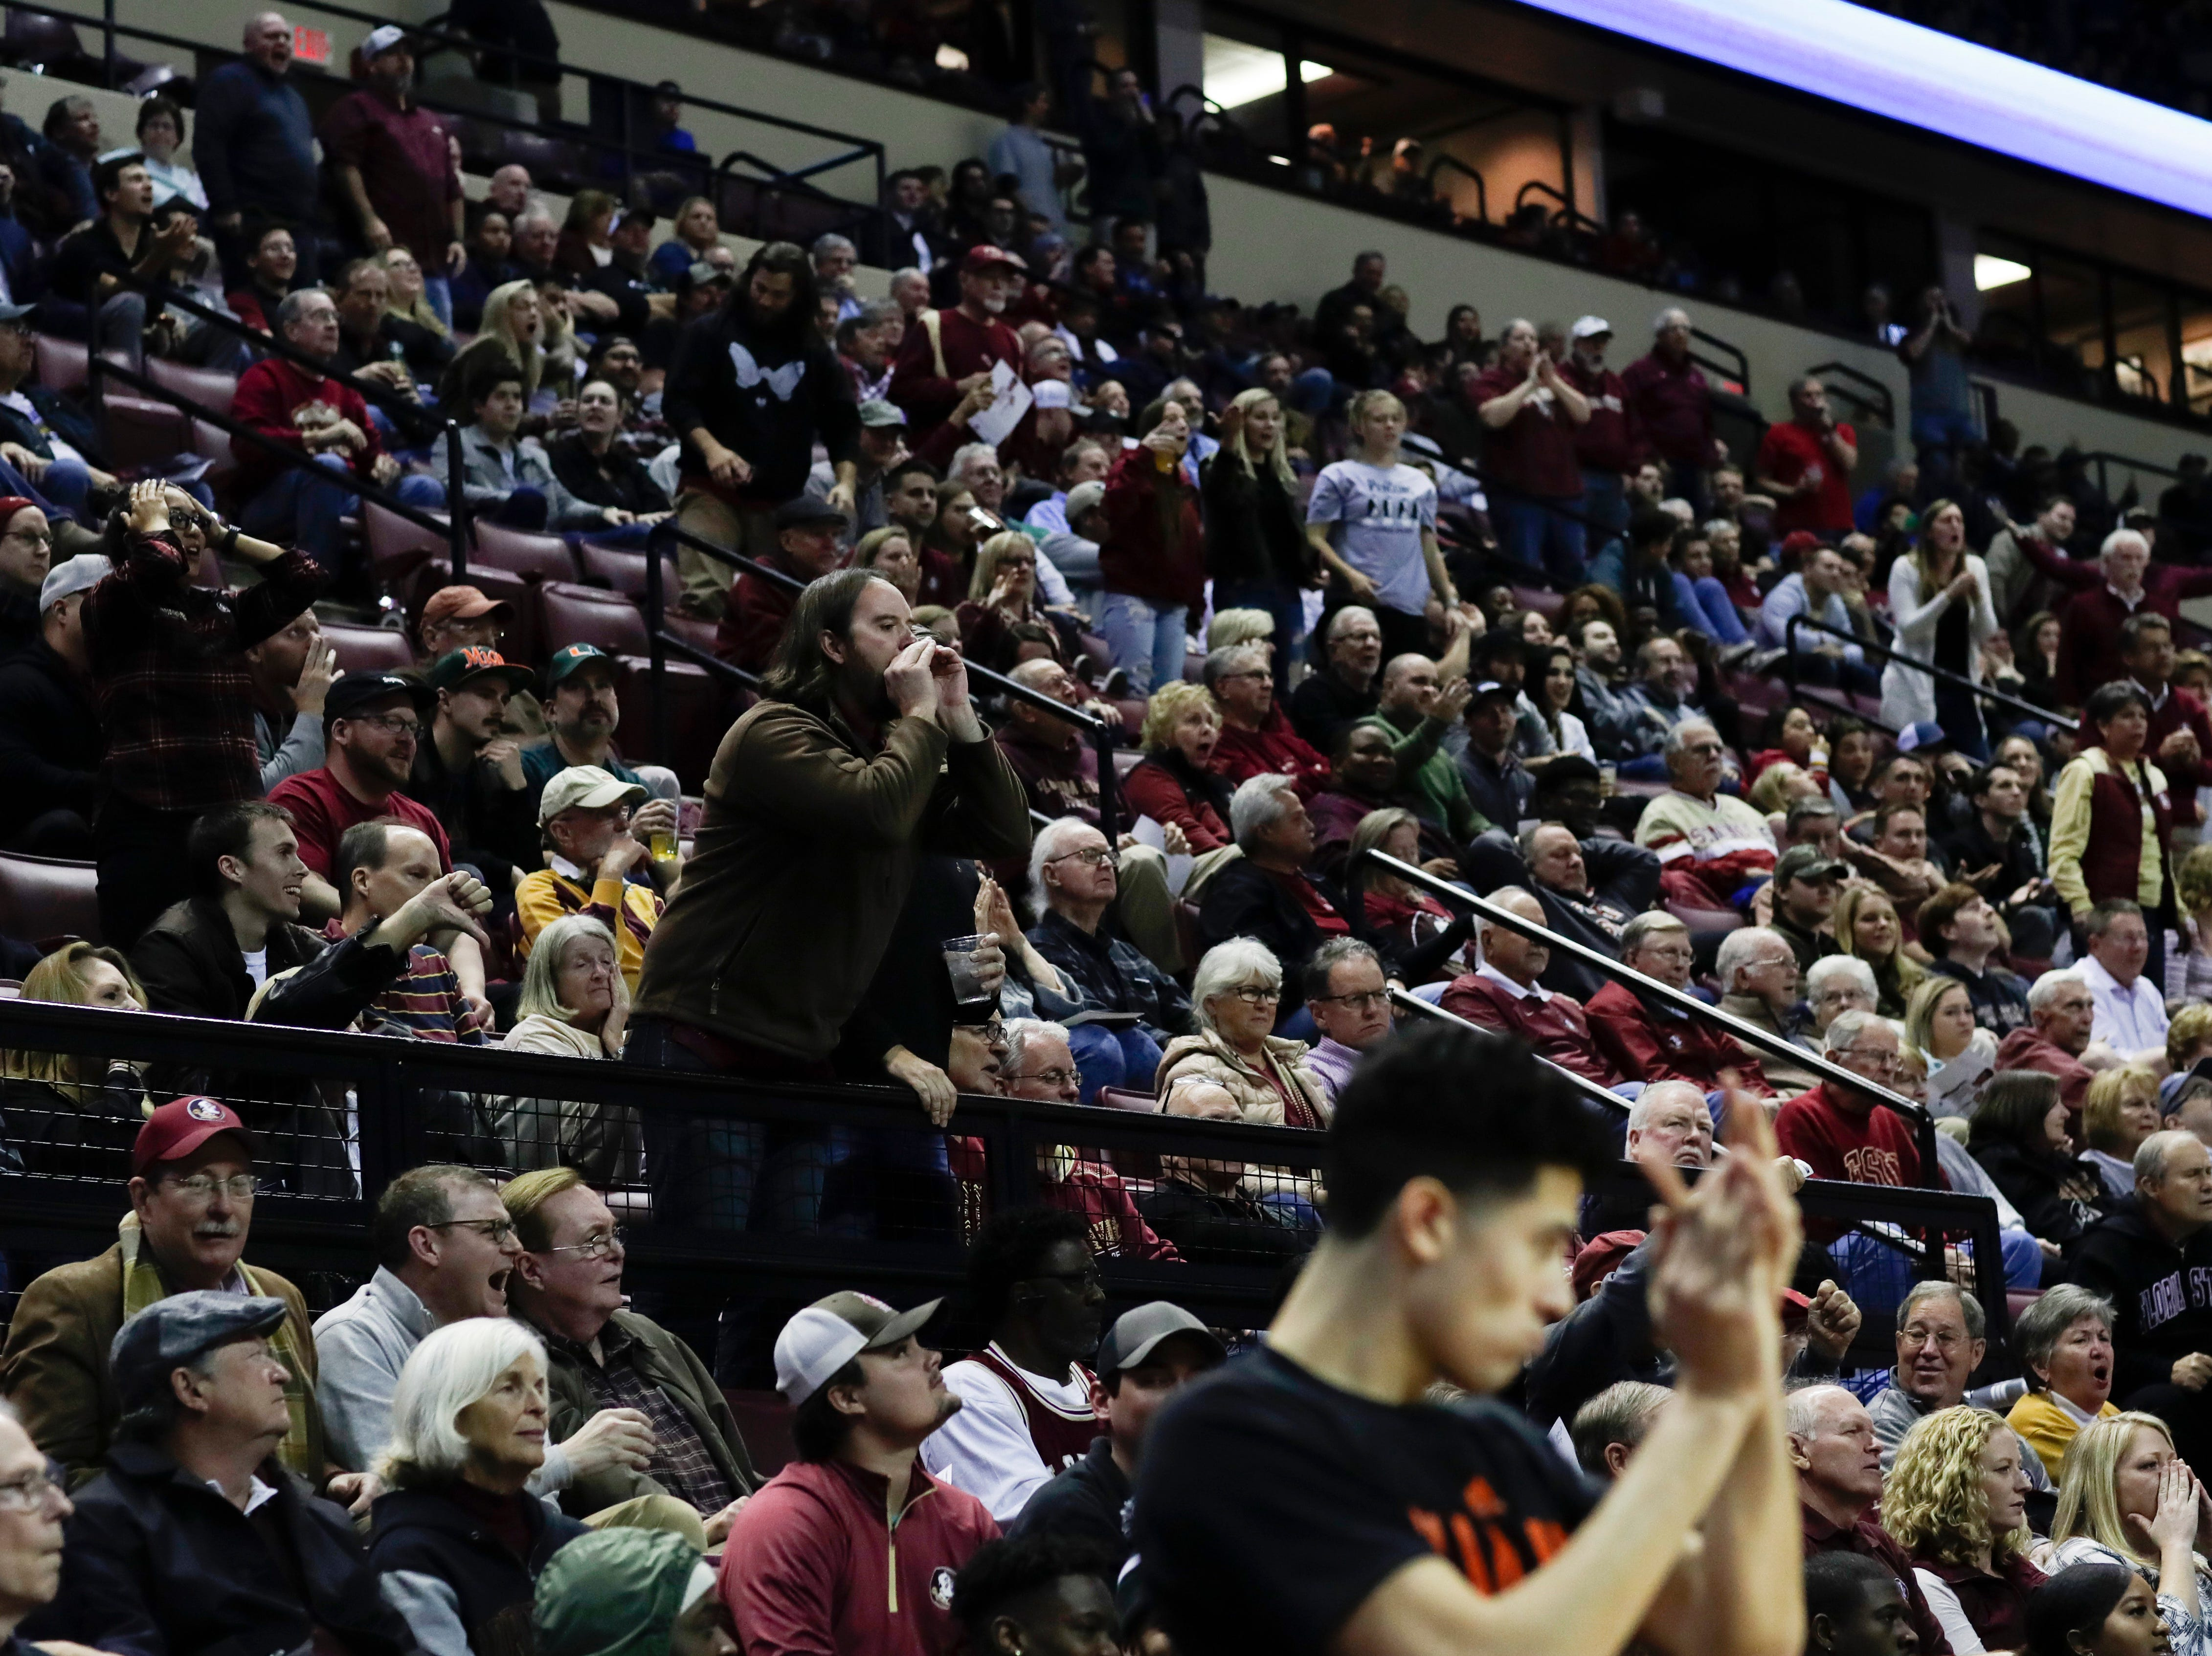 Fans react to a call against Florida State during a game between FSU and University of Miami Wednesday, Jan. 9, 2019.